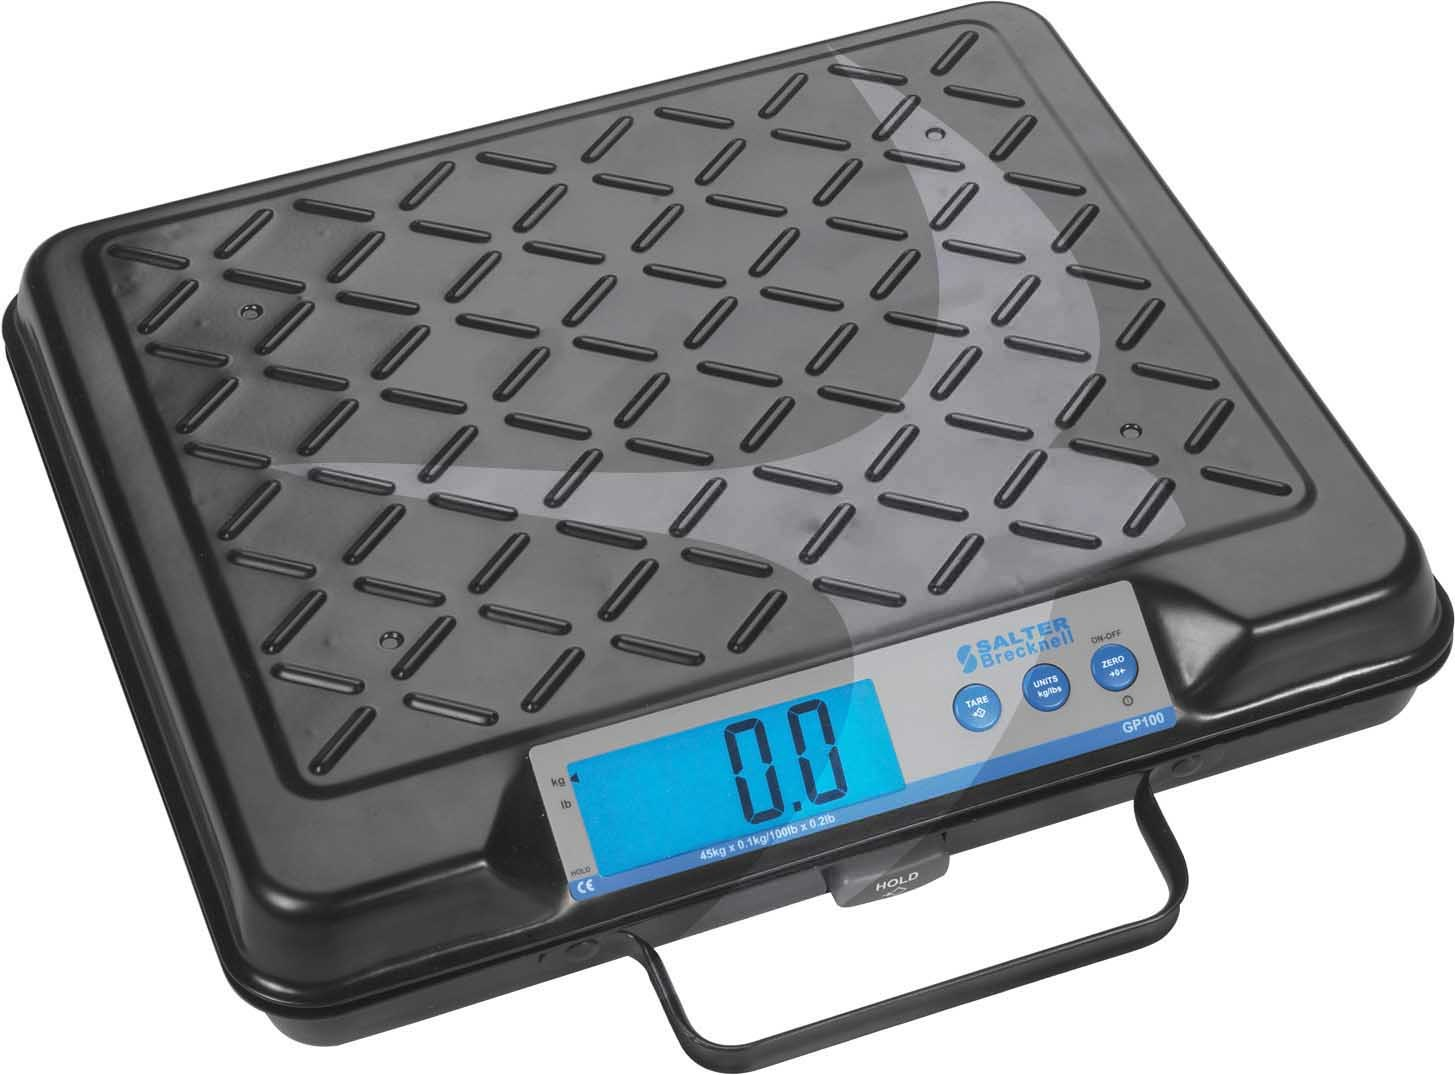 Portable Parcel Scale 278x318mm Up to 110Kg